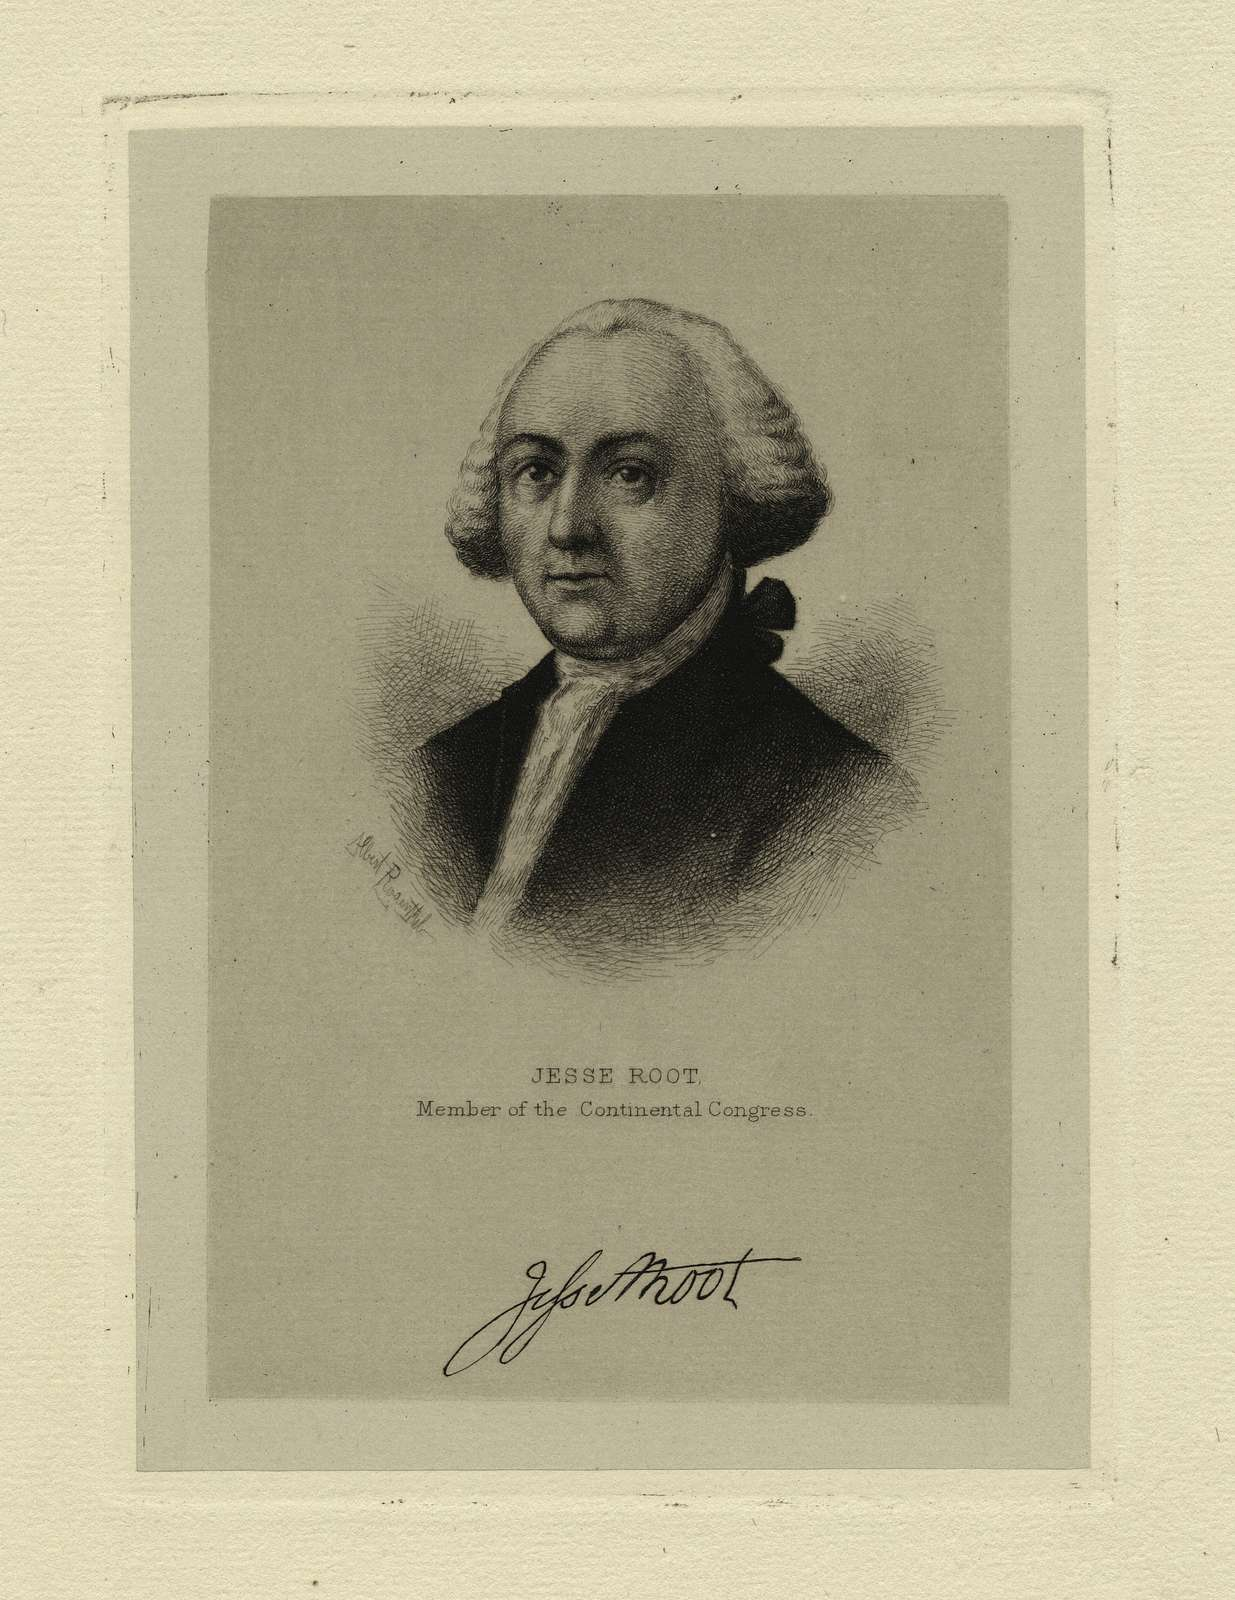 Jesse Root, member of the Continental Congress.